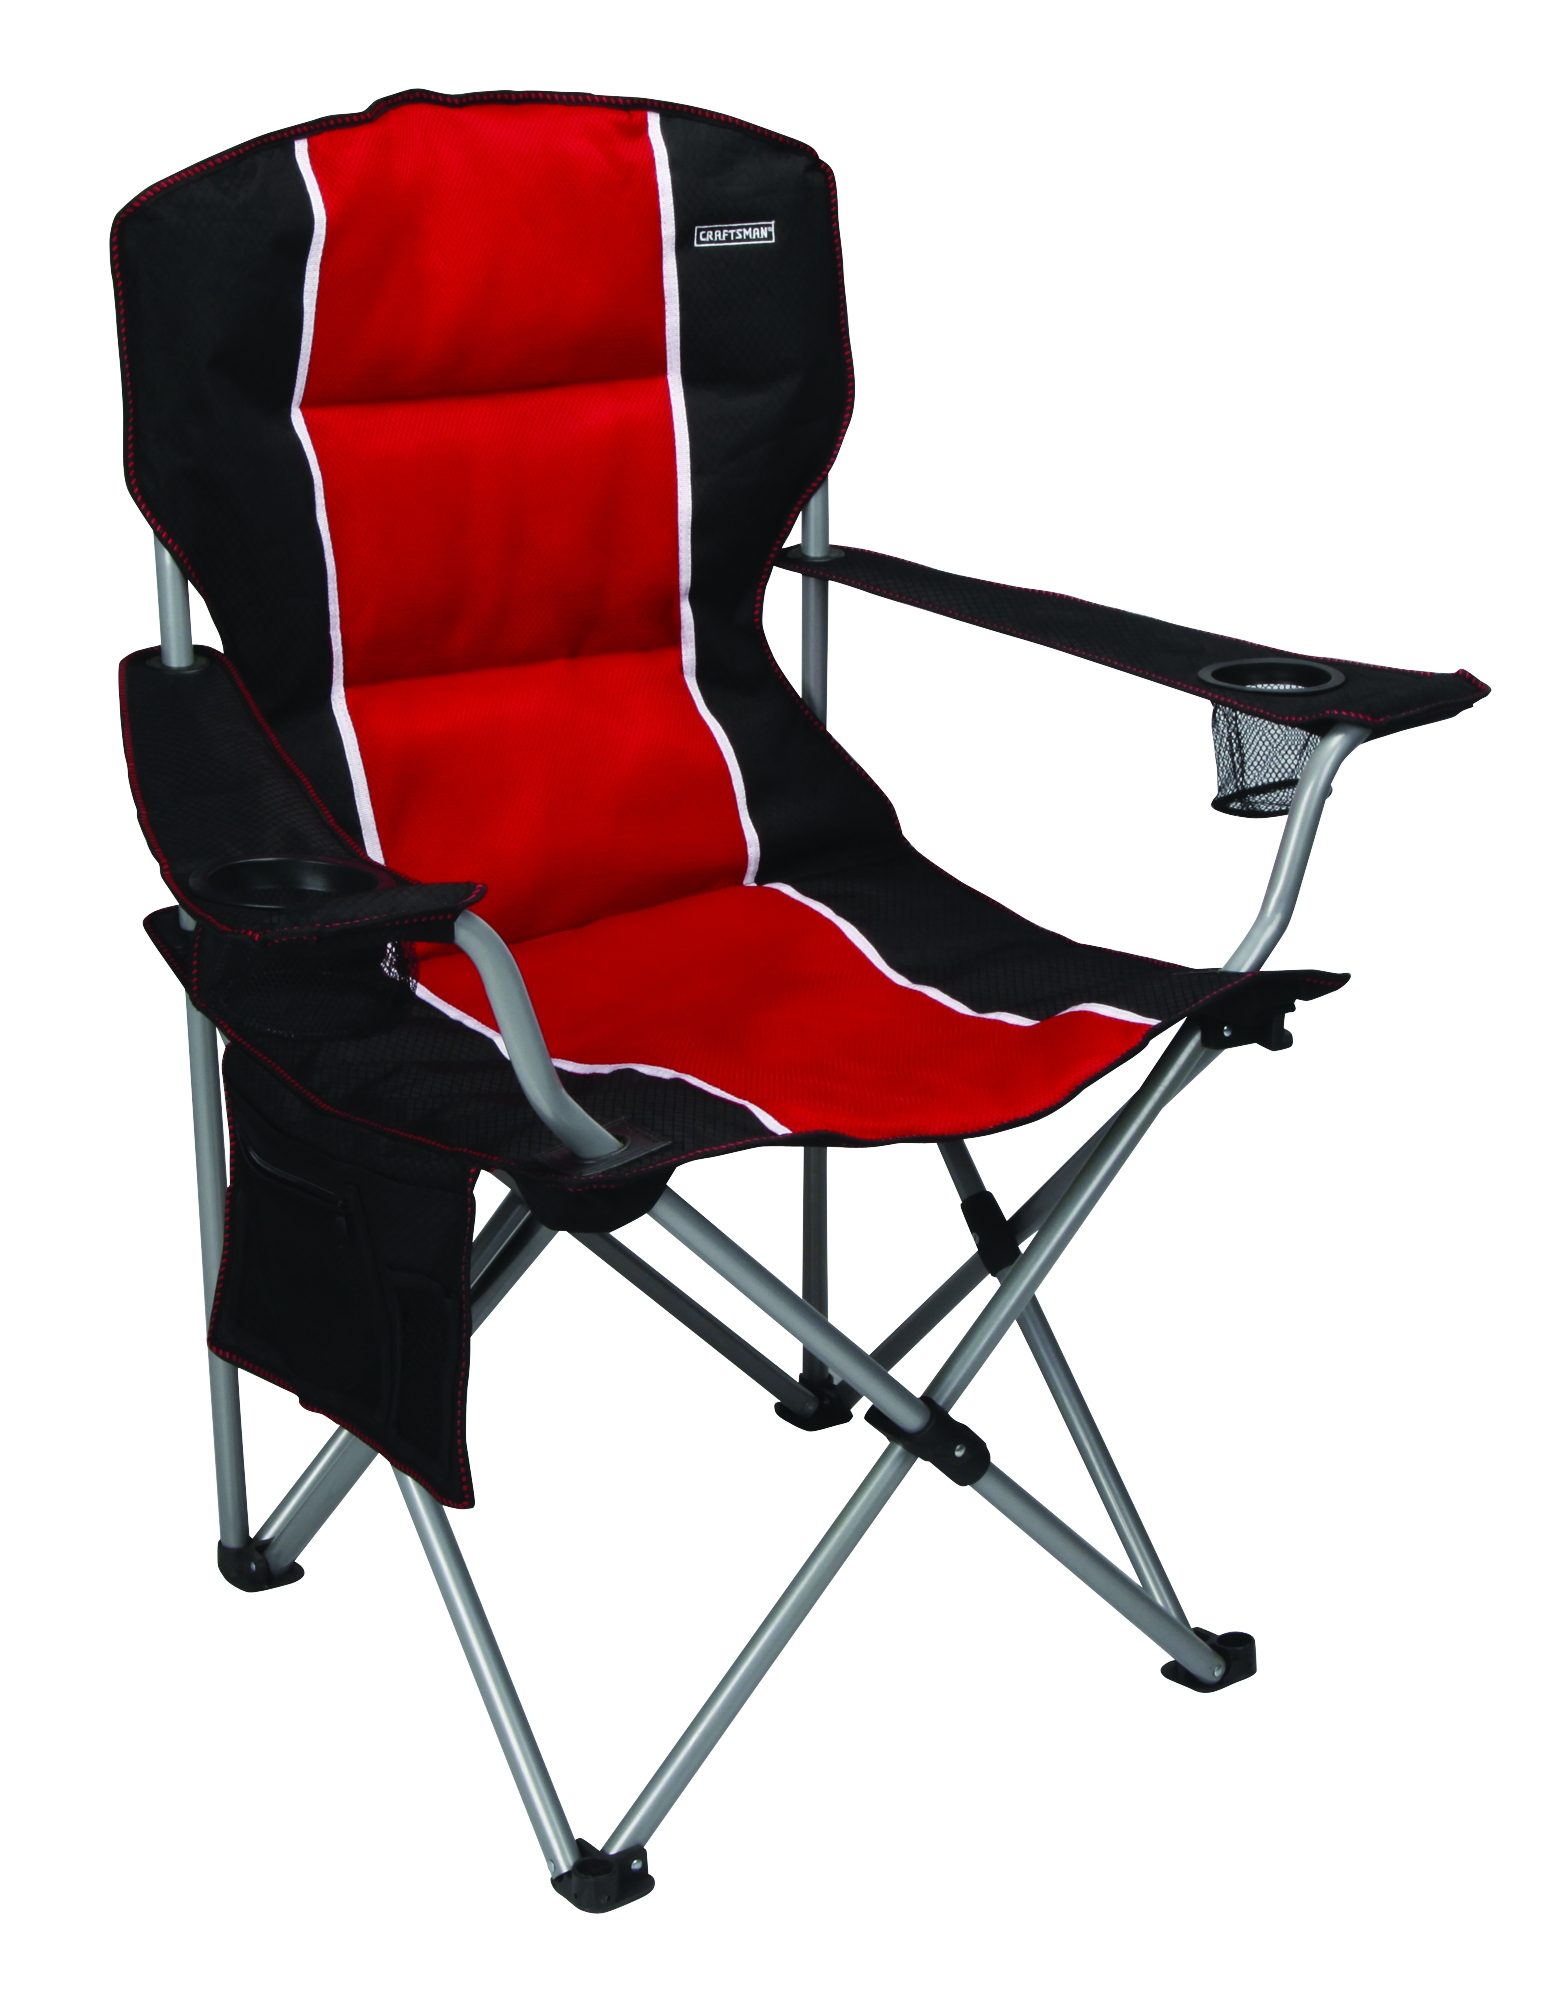 Folding Camping High Chair Craftsman Padded Chair Red Awsome Folding Outdoor Camping